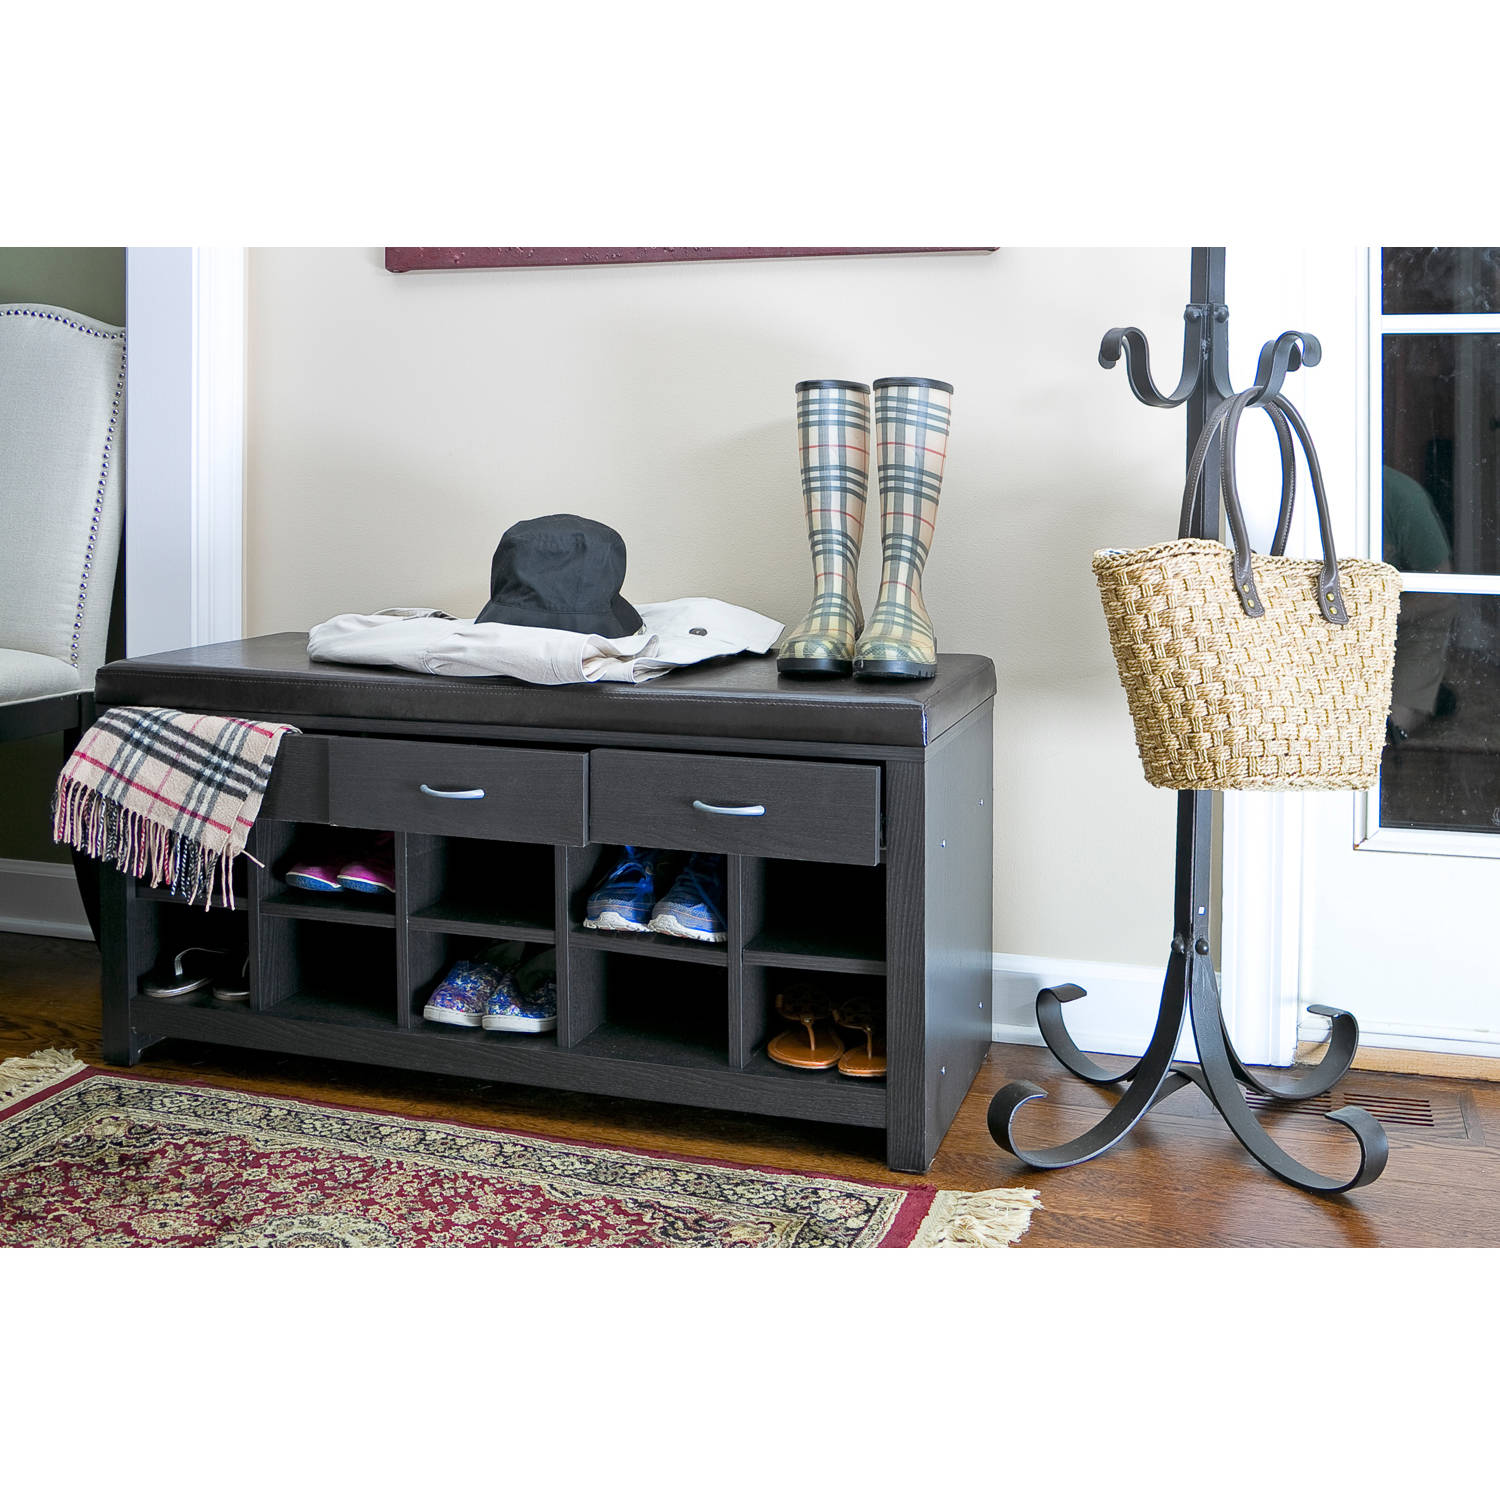 Prepac Entryway Shoe Storage Cubby Bench, Multiple Finishes   Walmart.com